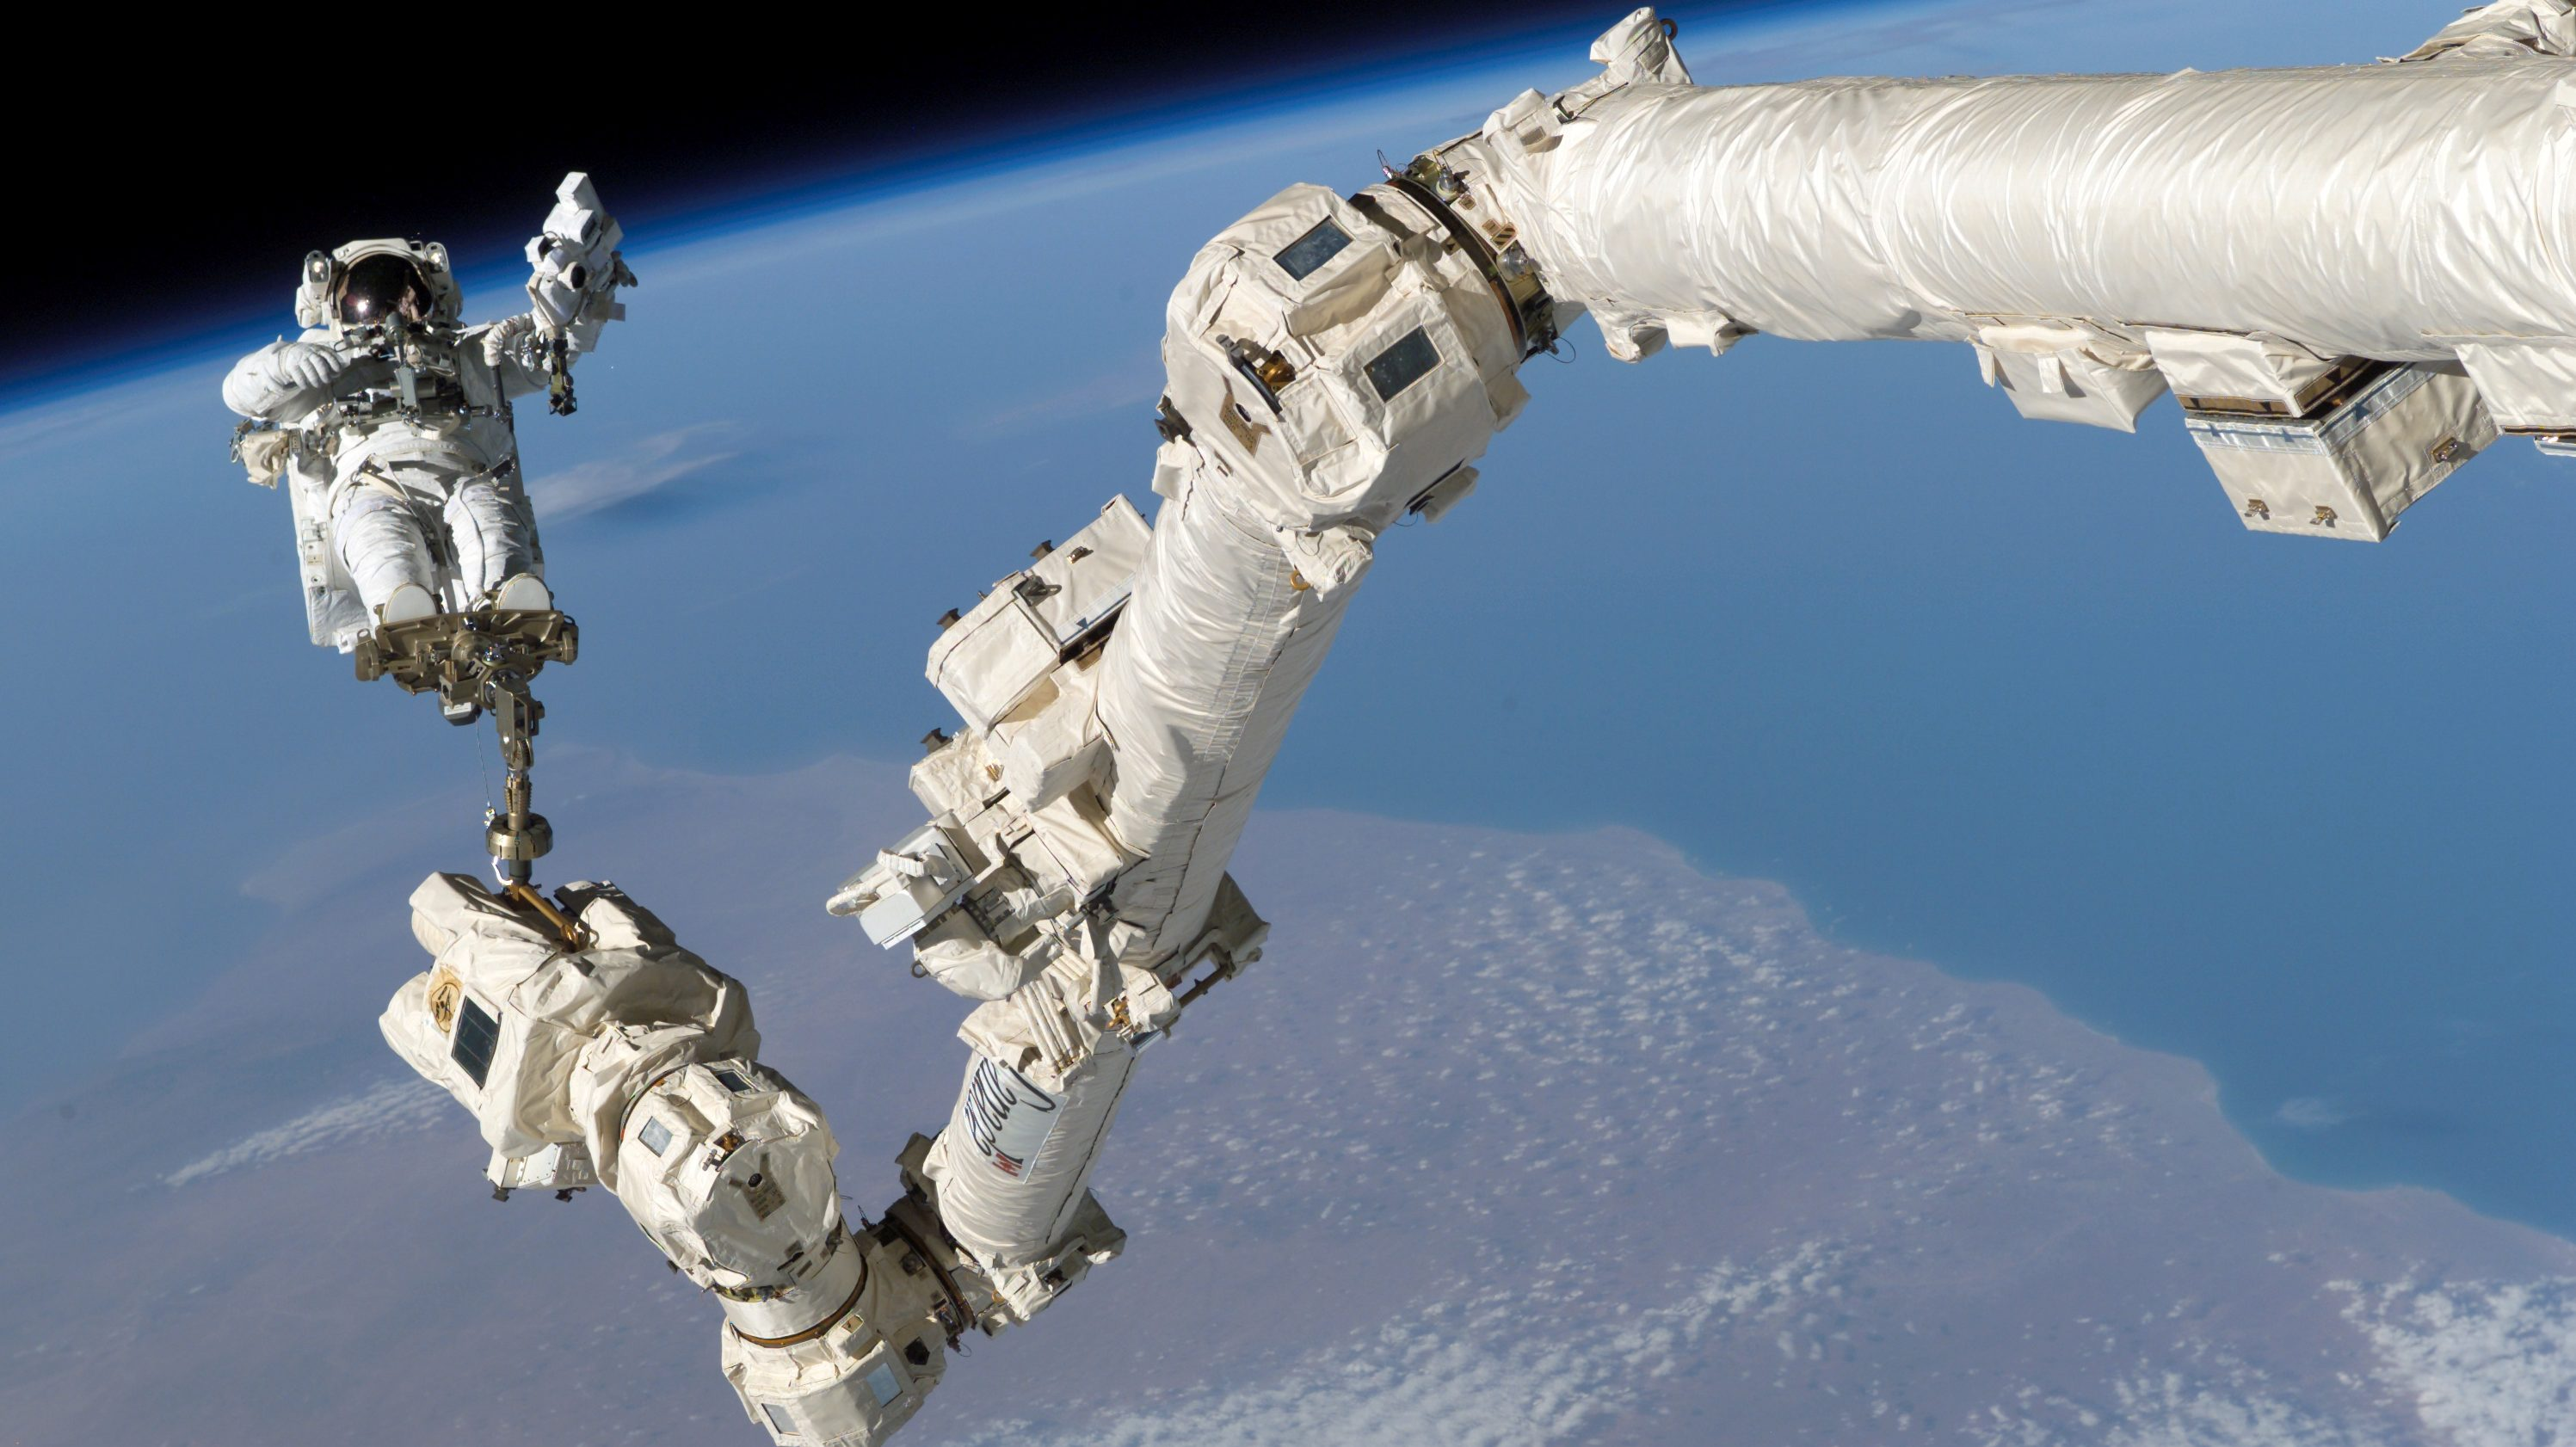 NASA astronaut Stephen K. Robinson is anchored to a foot restraint on the International Space StationÕs Canadarm2, built by Canadian technology company MDA, during his Space Shuttle missionÕs third session of extravehicular activity (EVA) August 3, 2005.